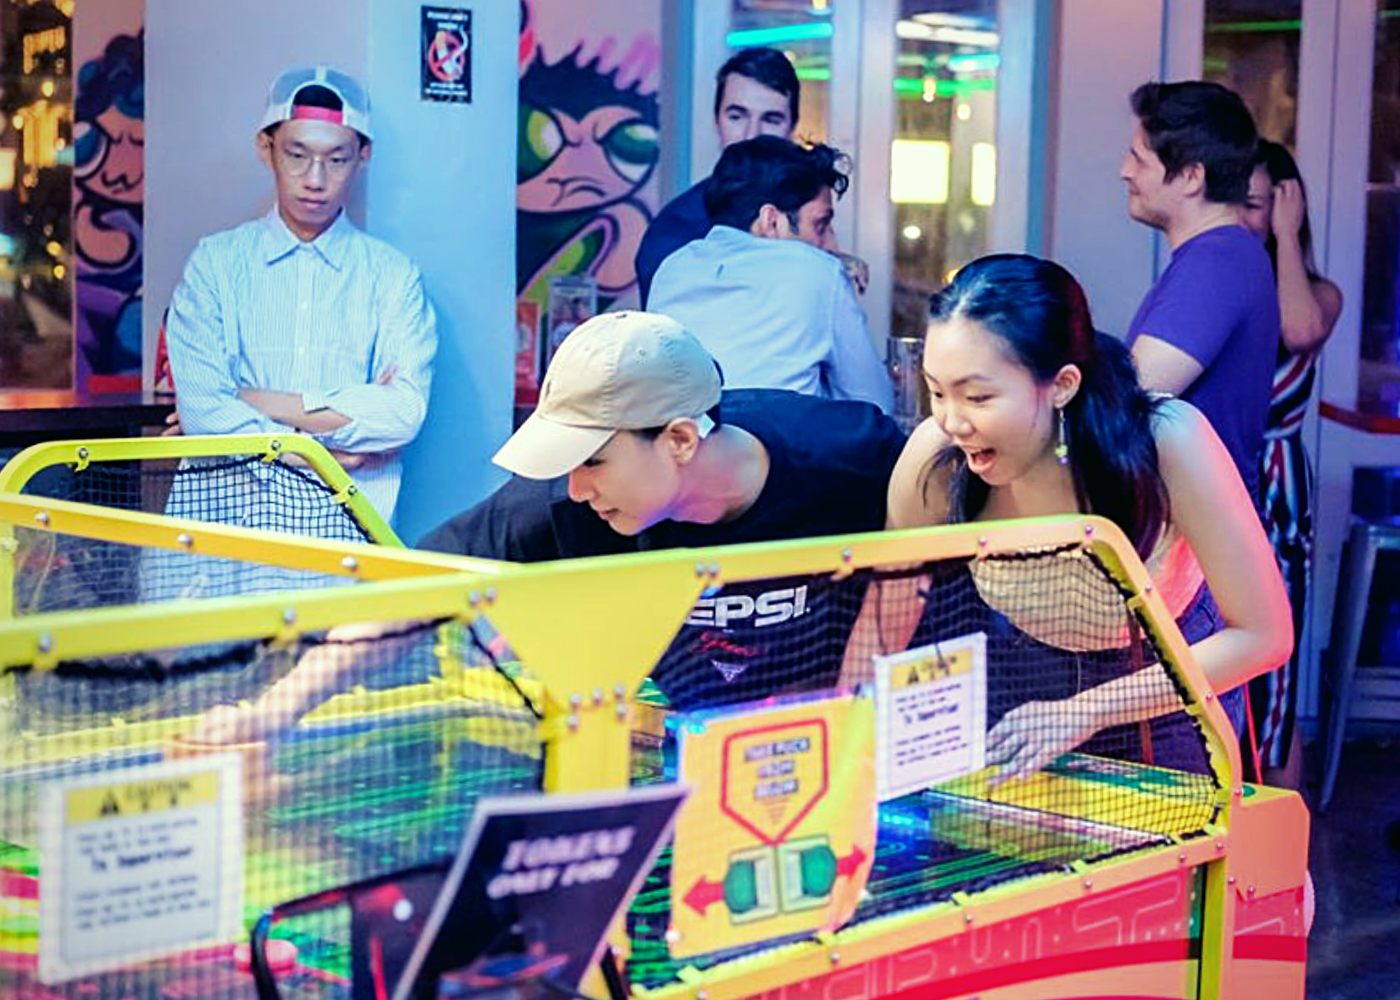 Best arcade bars and clubs in Singapore: Level Up